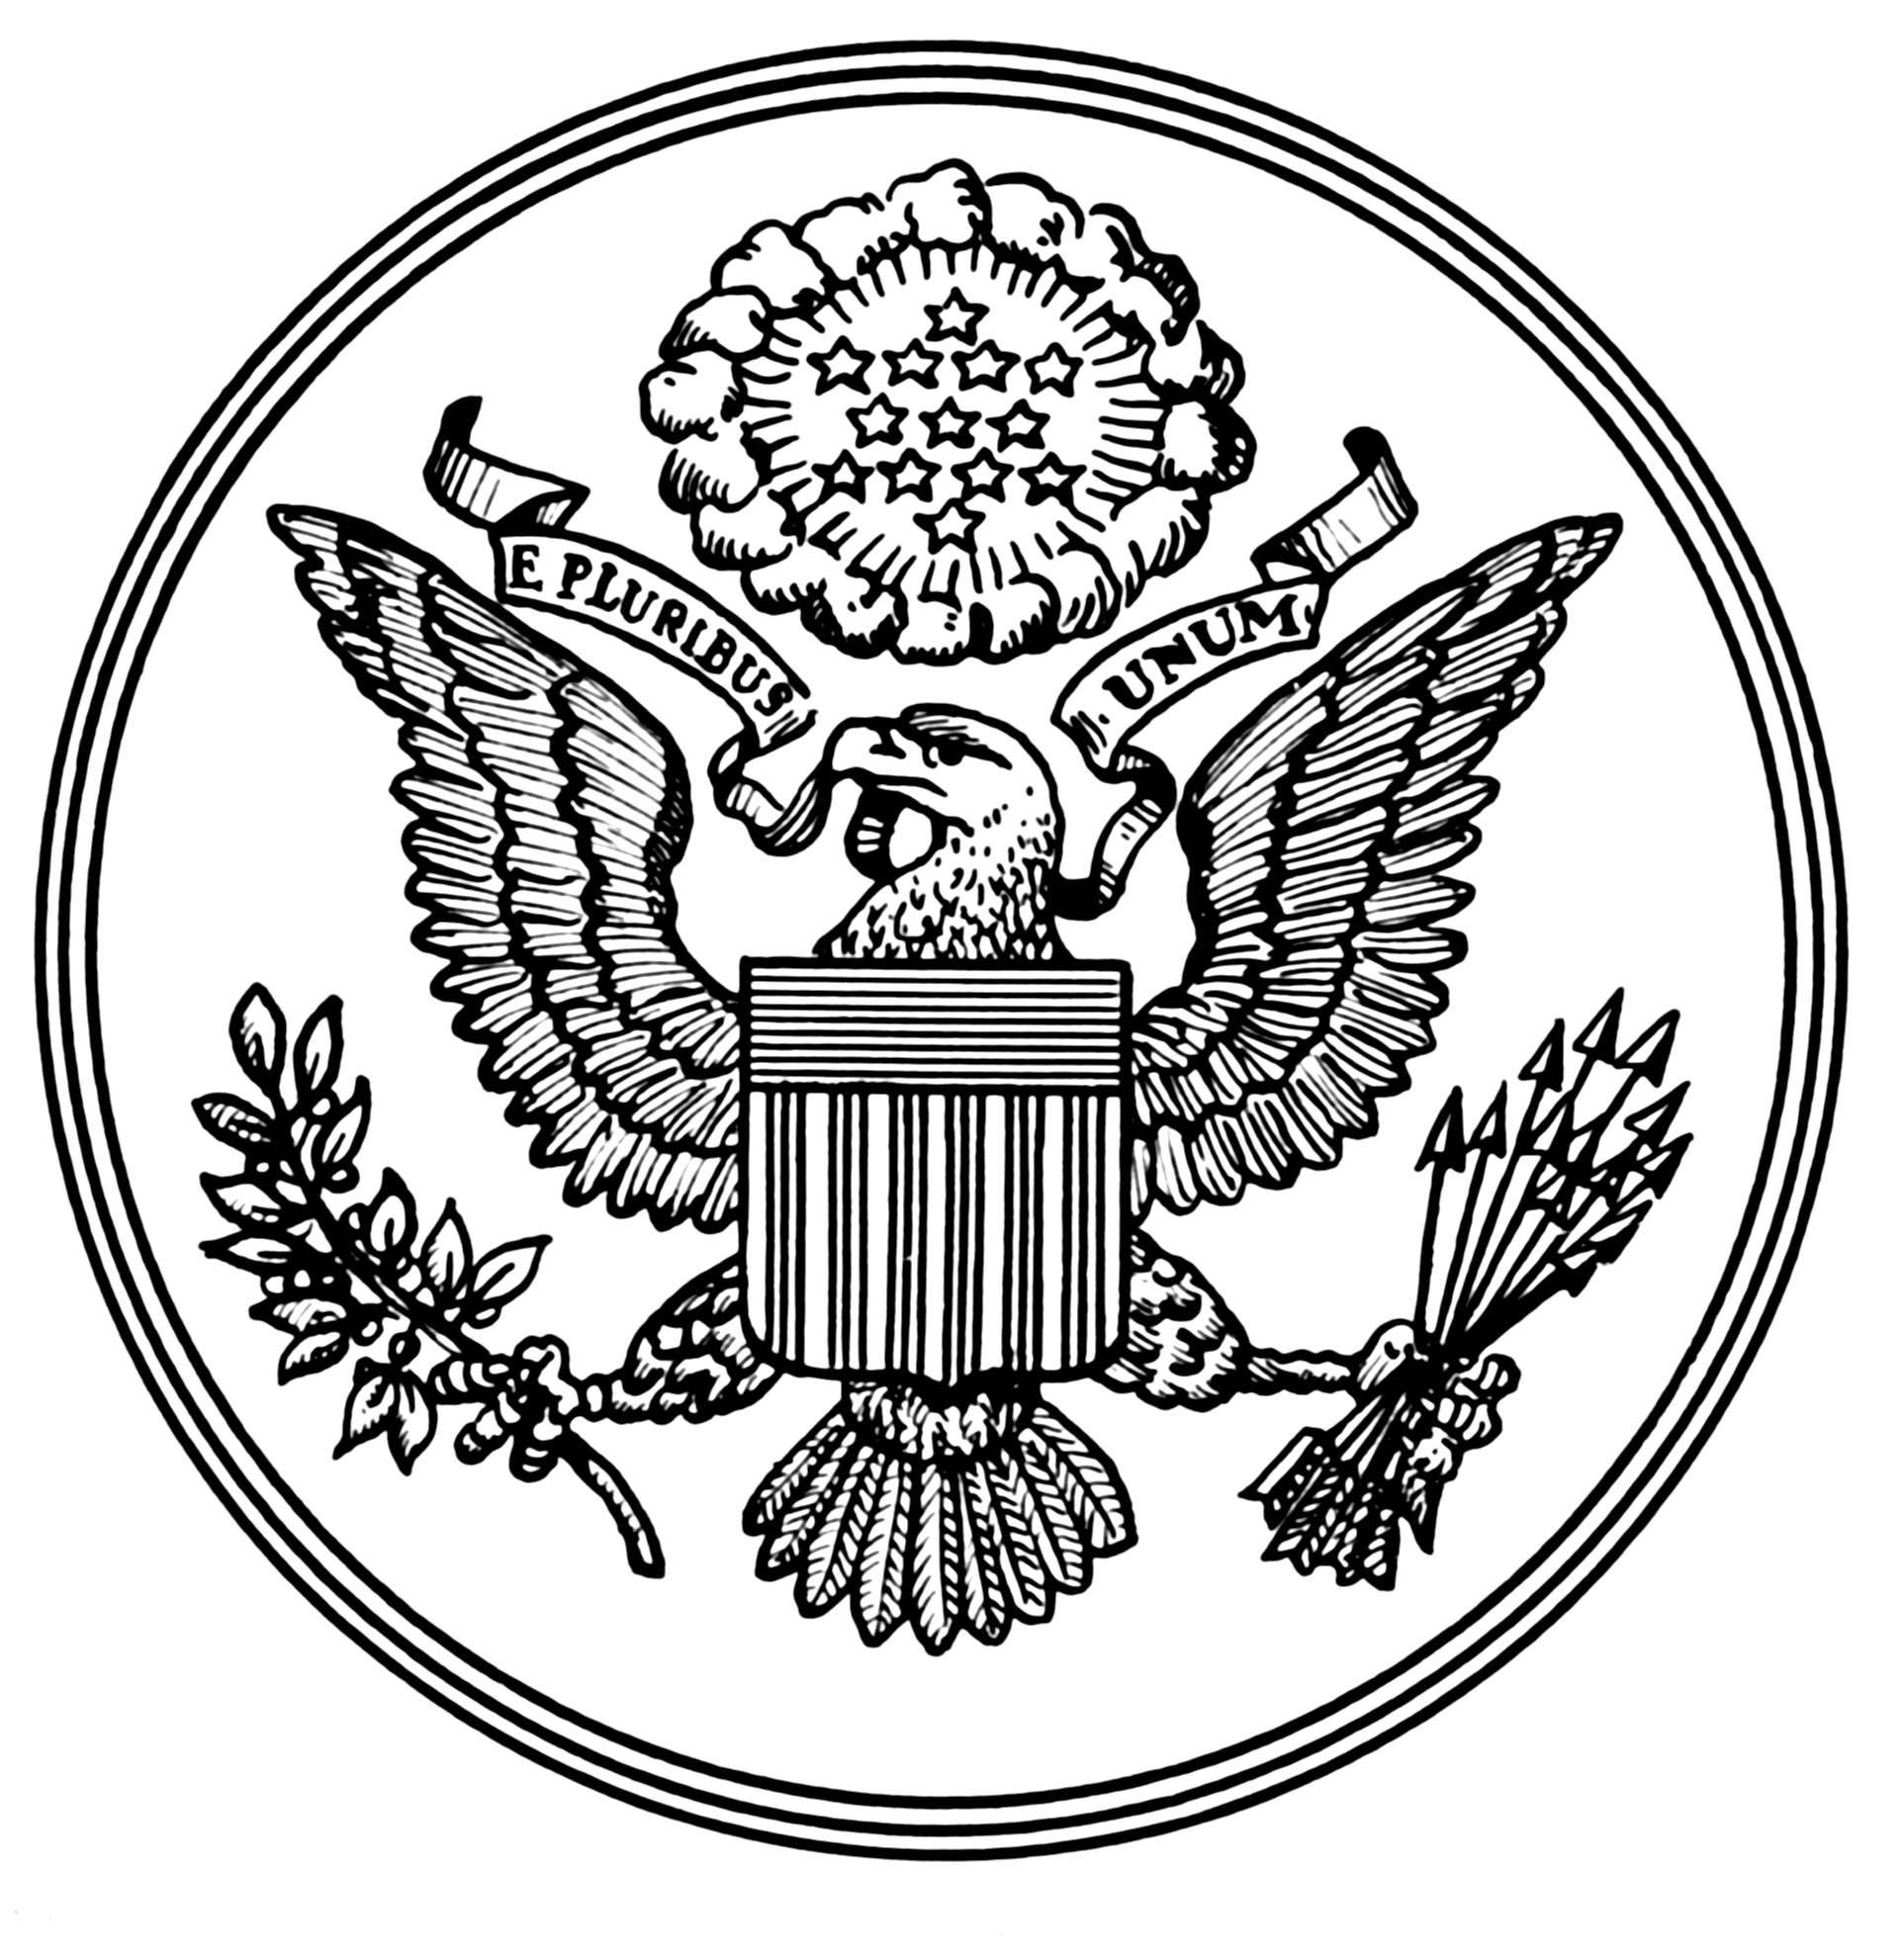 State Seals Coloring Pages Coloring Pages of Great Seal